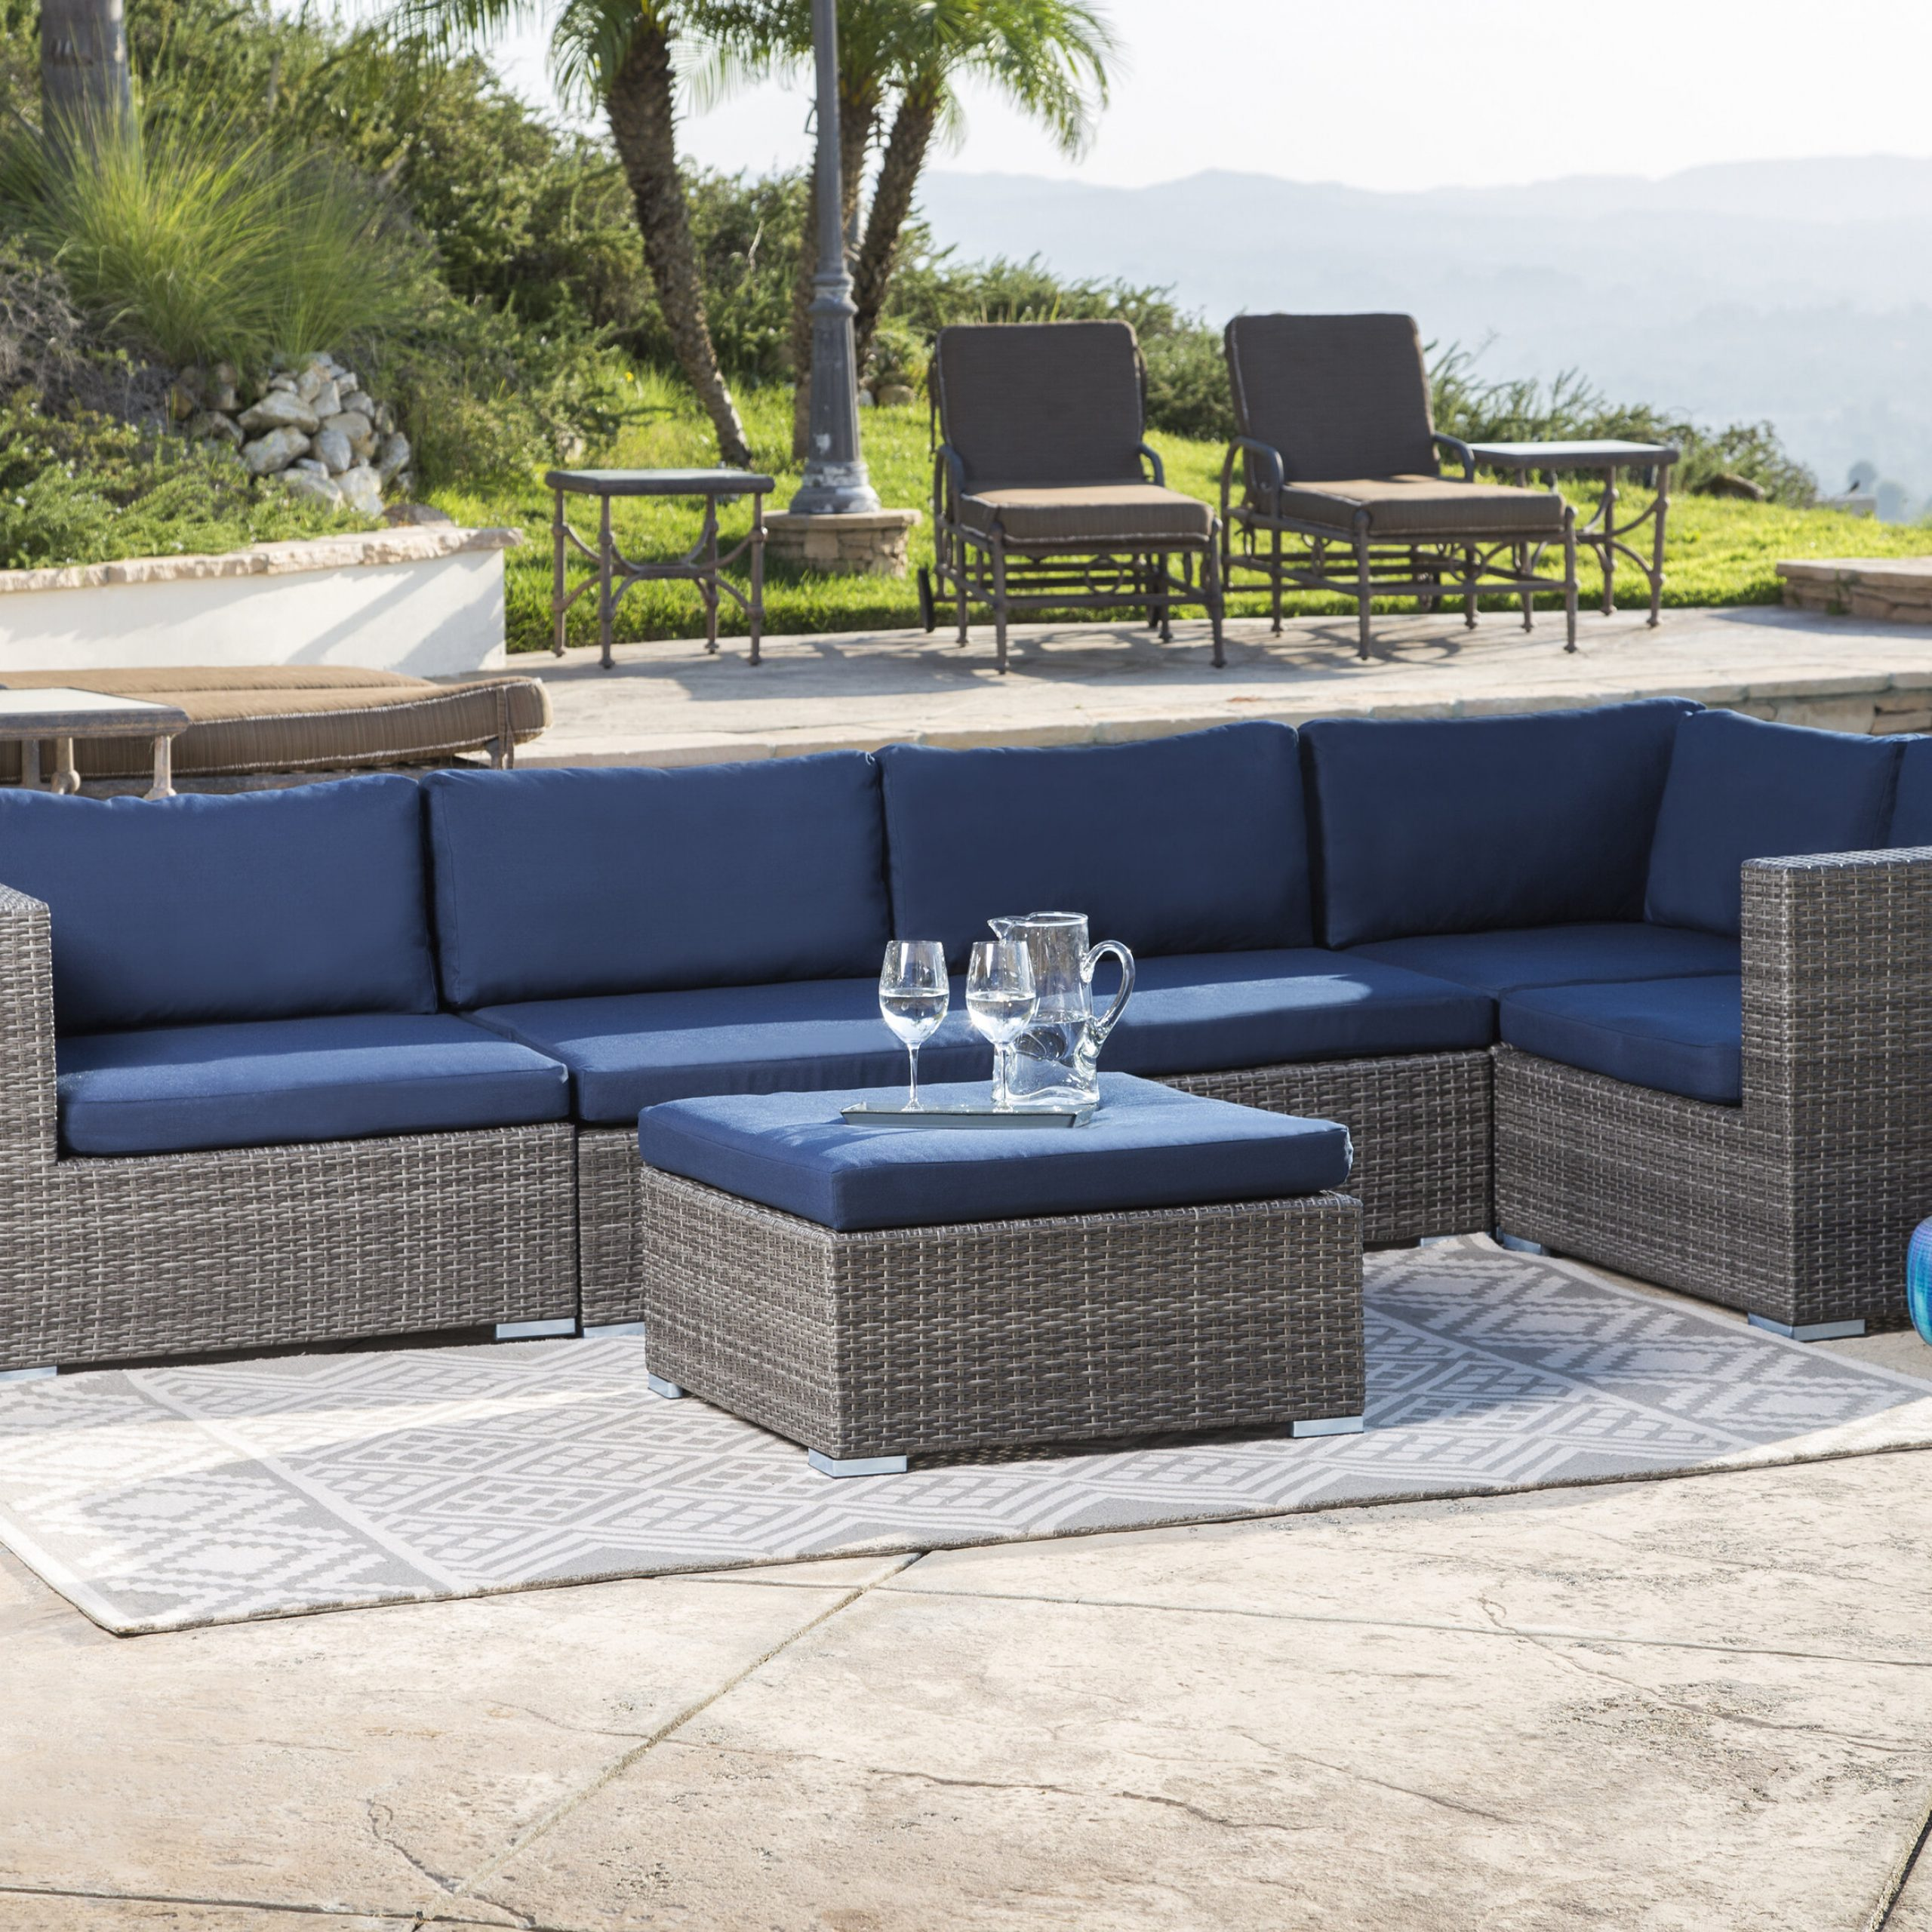 Newest Ostrowski Patio Sectionals With Cushions Pertaining To Ostrowski Patio Sectional With Cushions (Gallery 1 of 25)